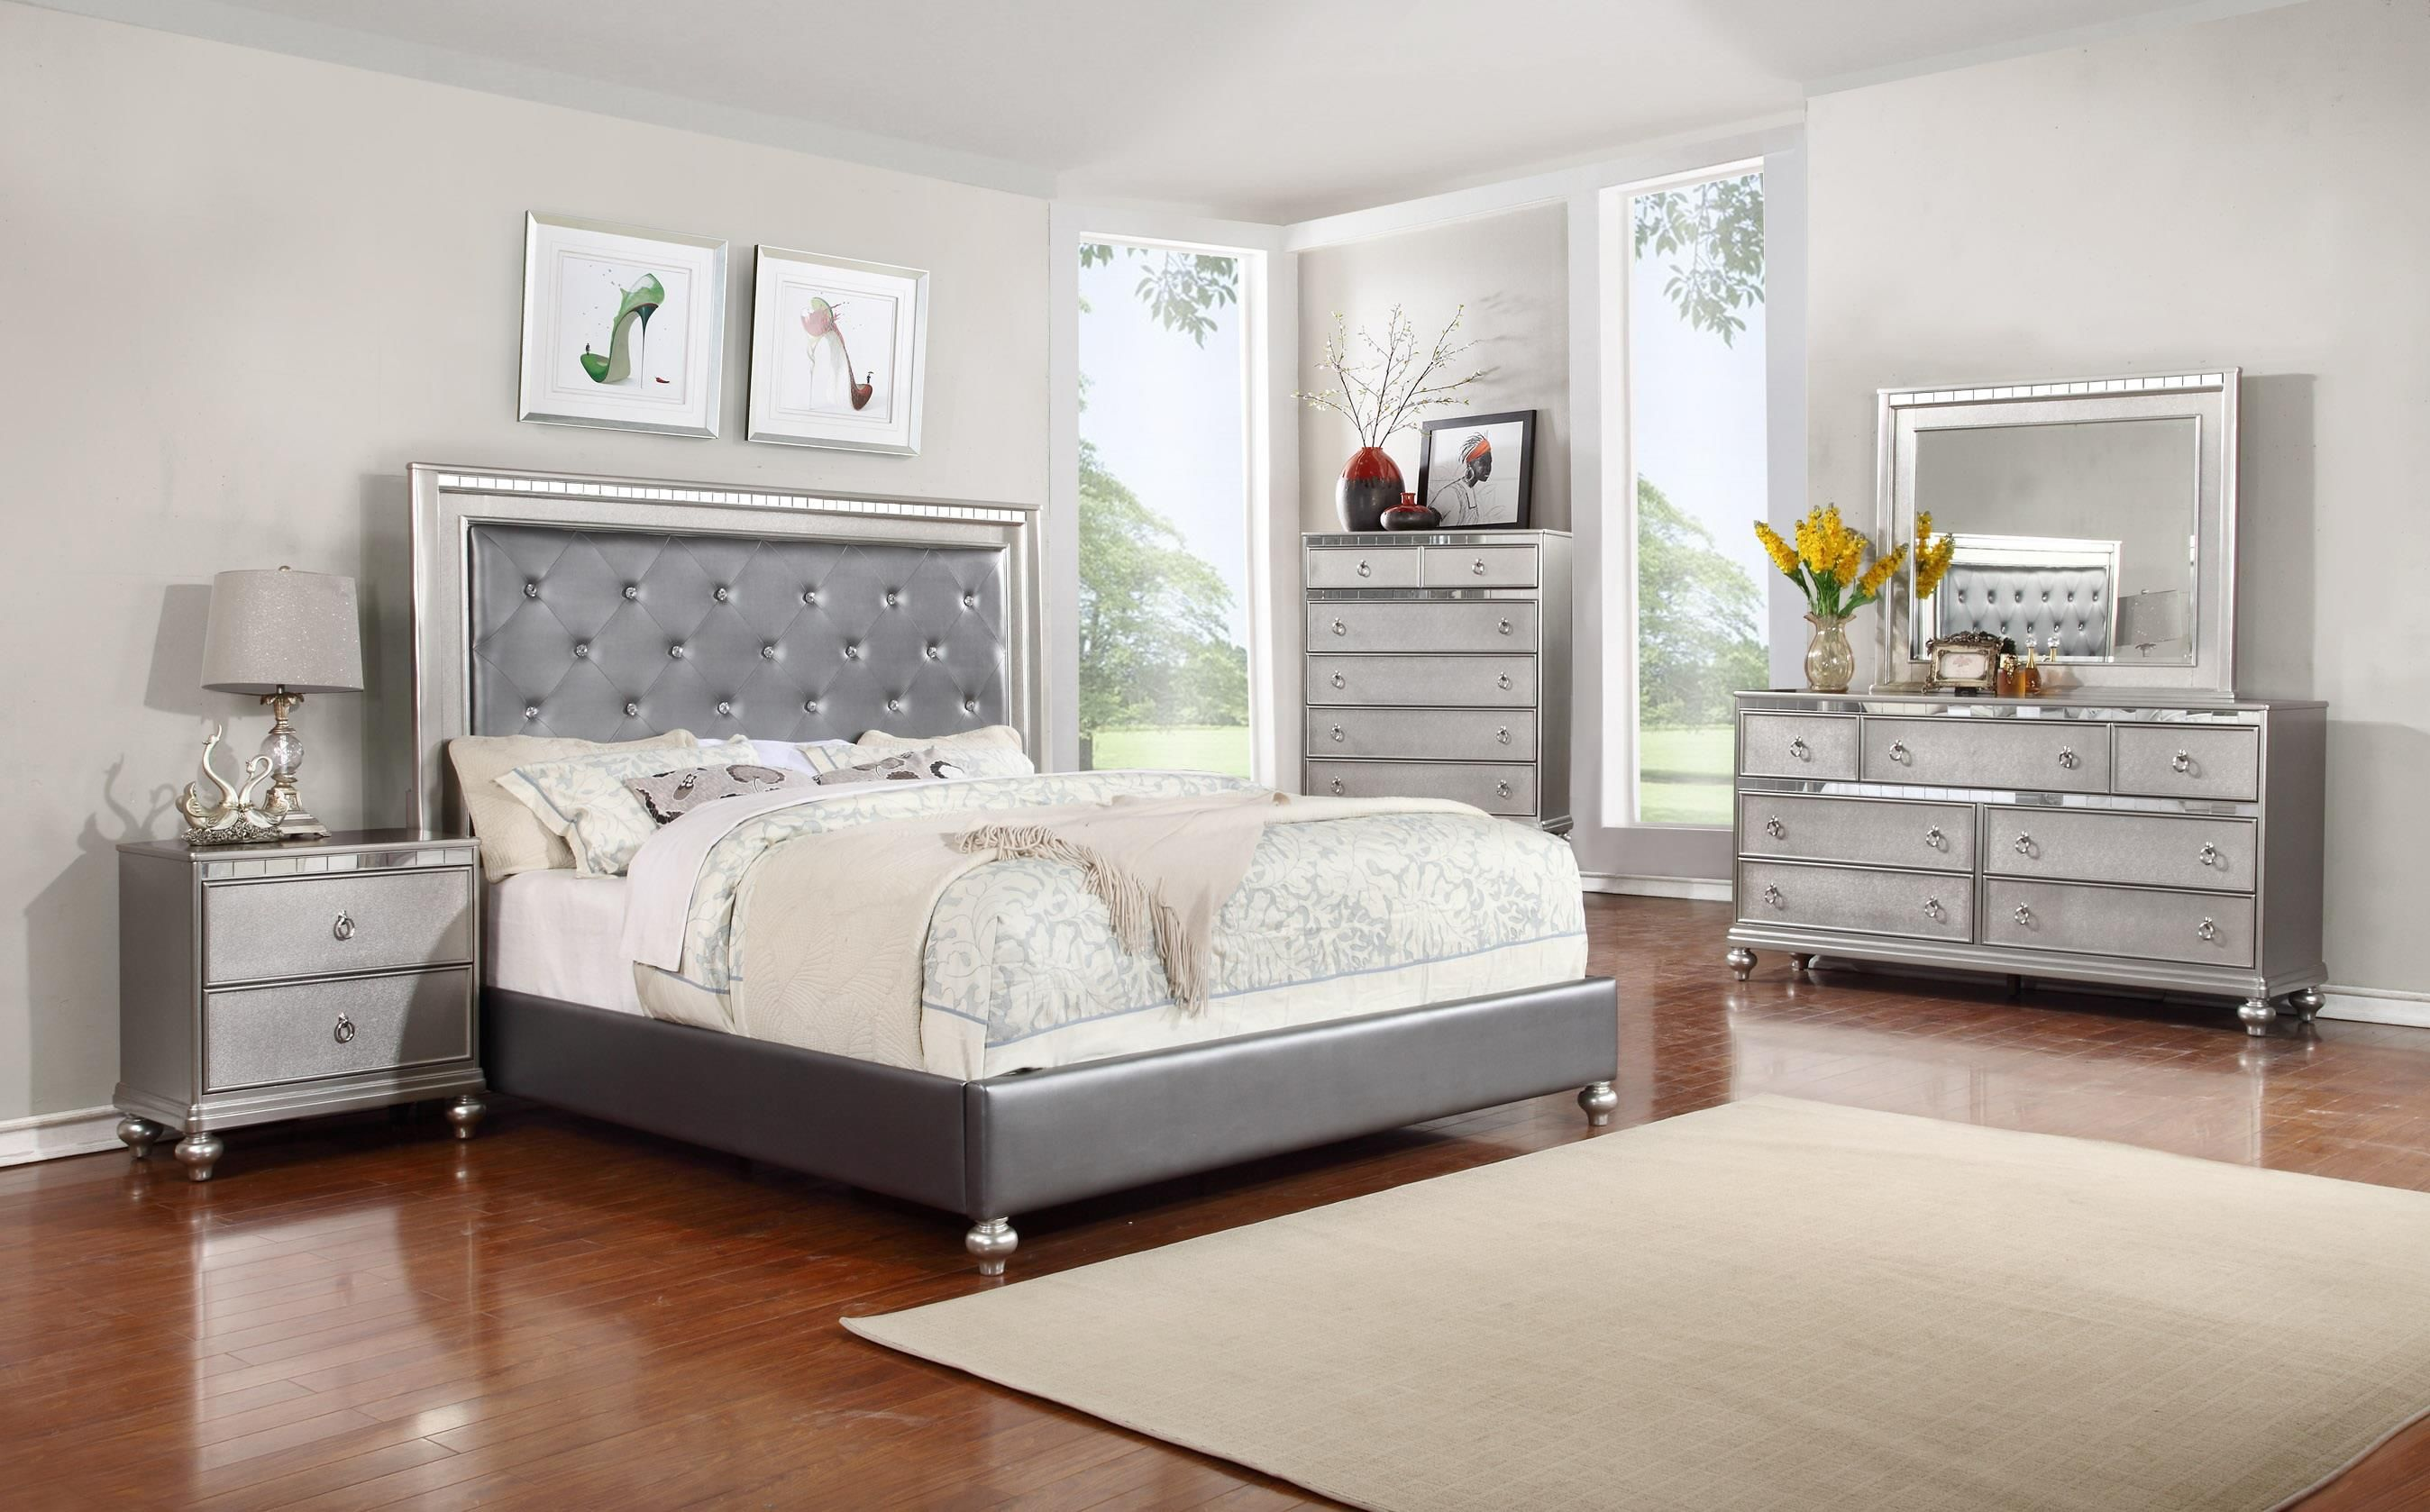 c4183a queen bedroom group by lifestyle | home decor | pinterest